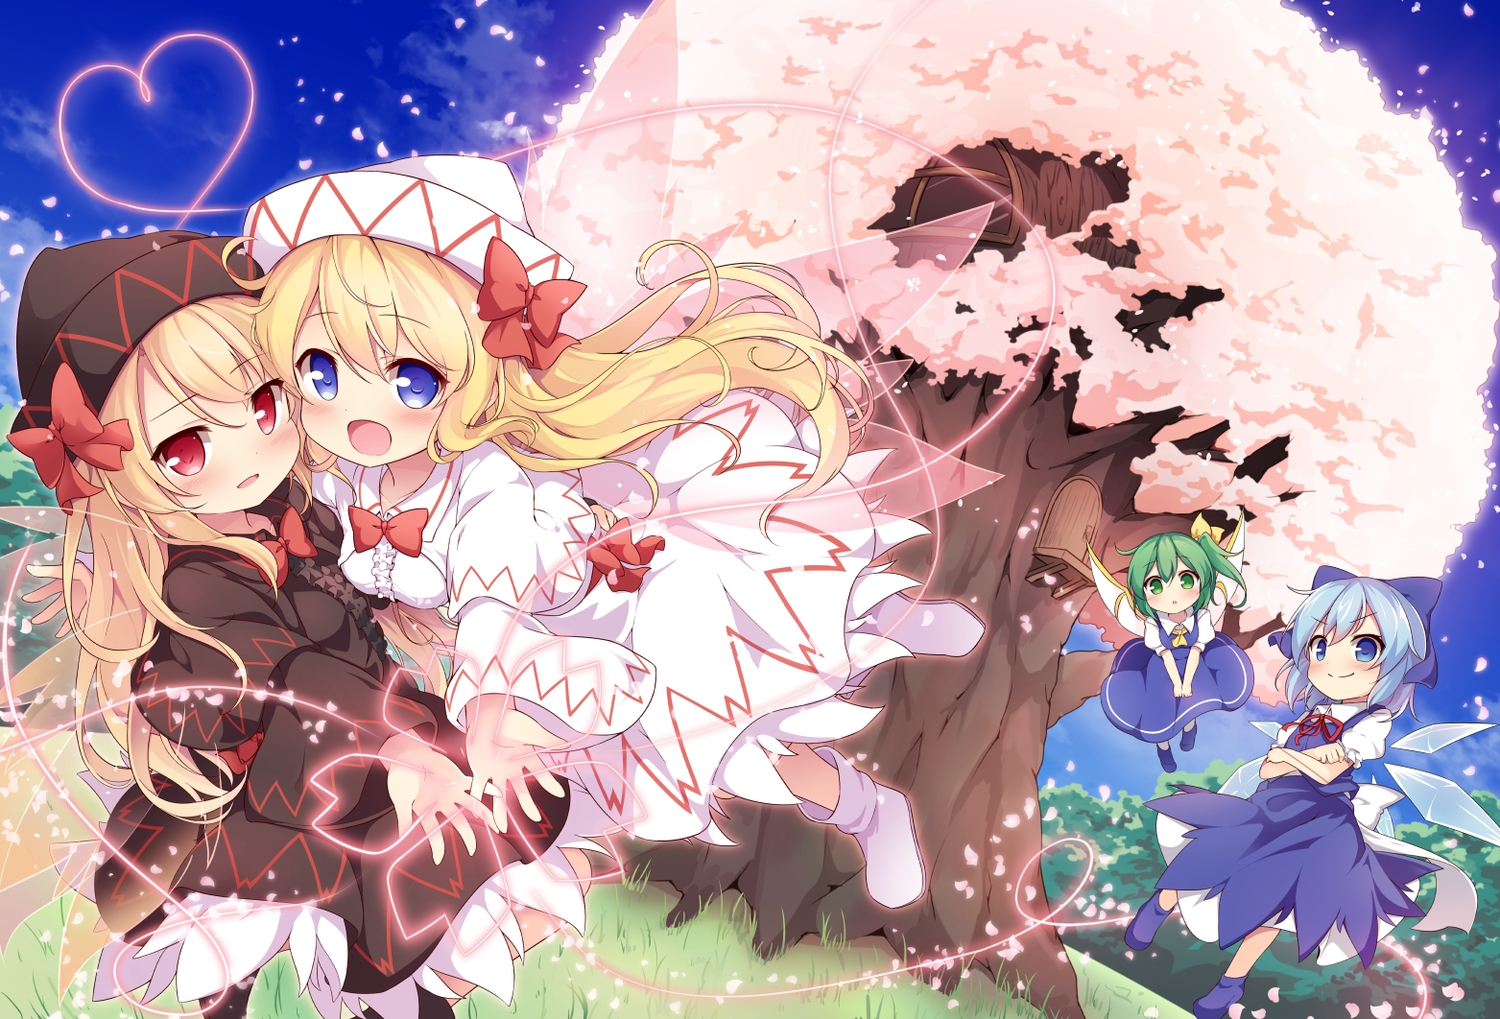 aliasing baku_ph blonde_hair blue_eyes blue_hair blush boots bow breasts cherry_blossoms cirno daiyousei dress fairy flowers grass green_eyes green_hair hat heart lily_black lily_white loli long_hair red_eyes ribbons shirt sky touhou tree wings